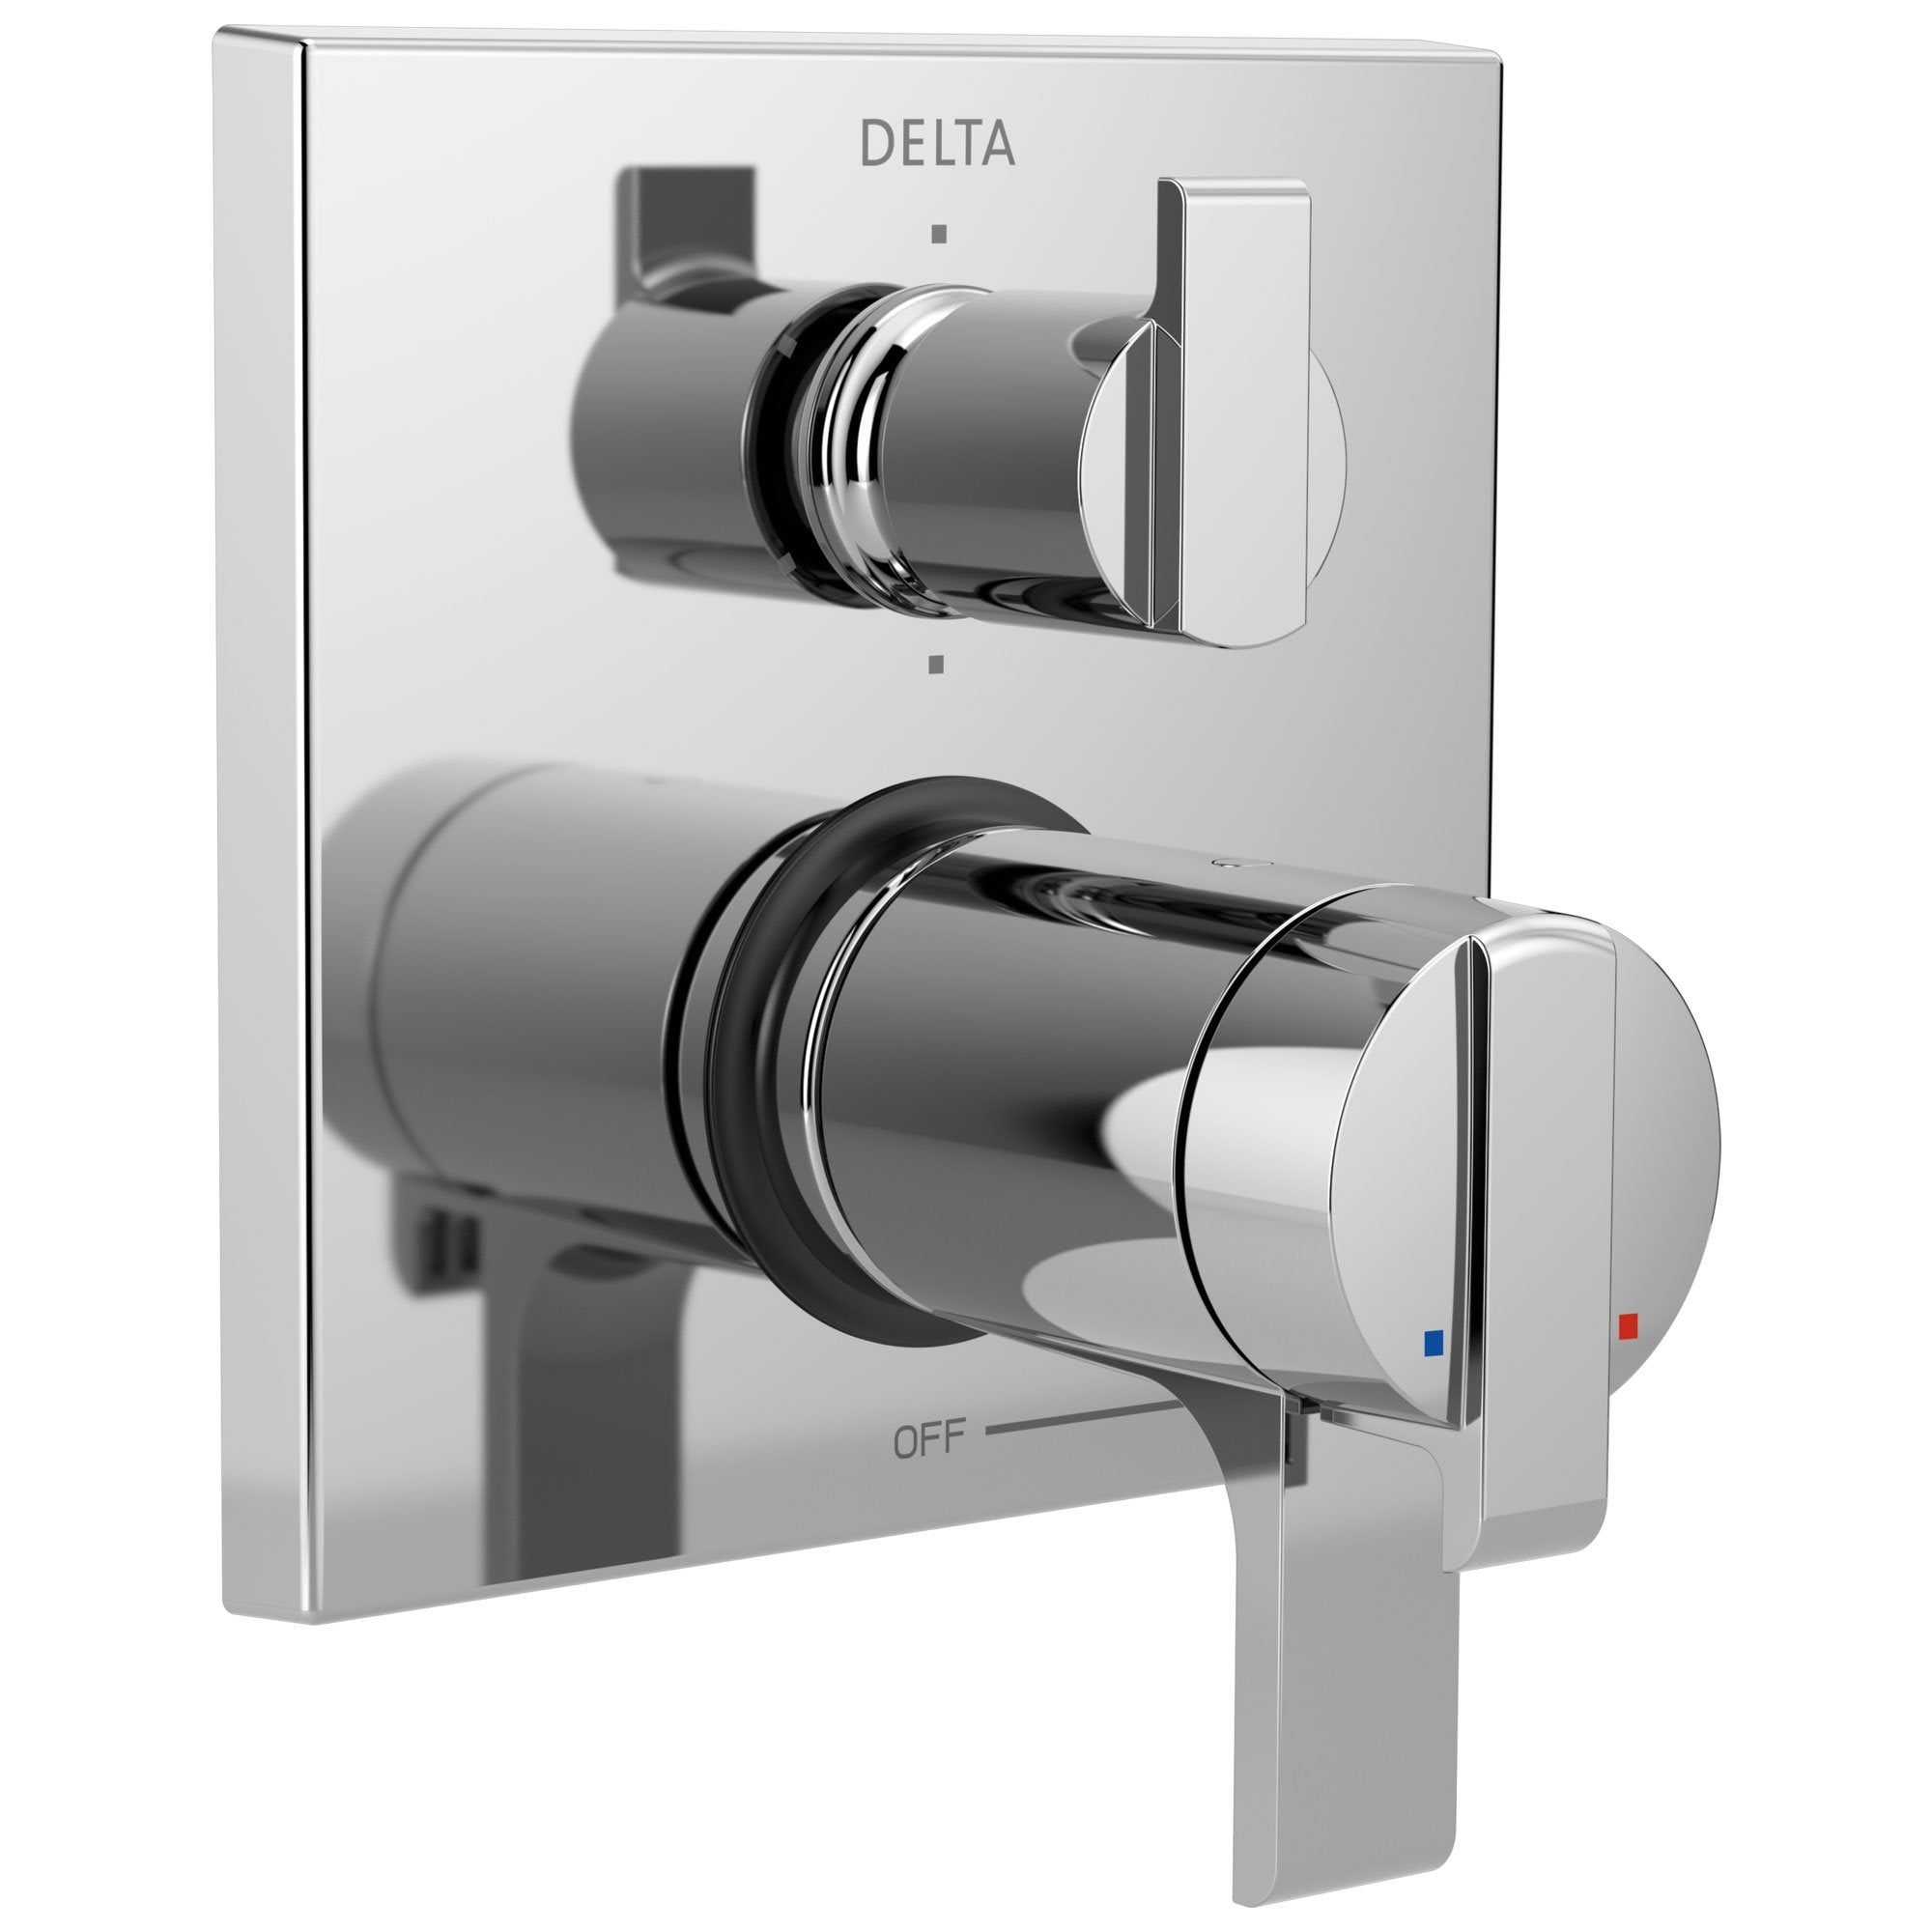 Delta Ara Chrome Modern Thermostatic Shower Faucet Control Handle with 6-Setting Integrated Diverter Includes Trim Kit and Rough-in Valve with Stops D2117V